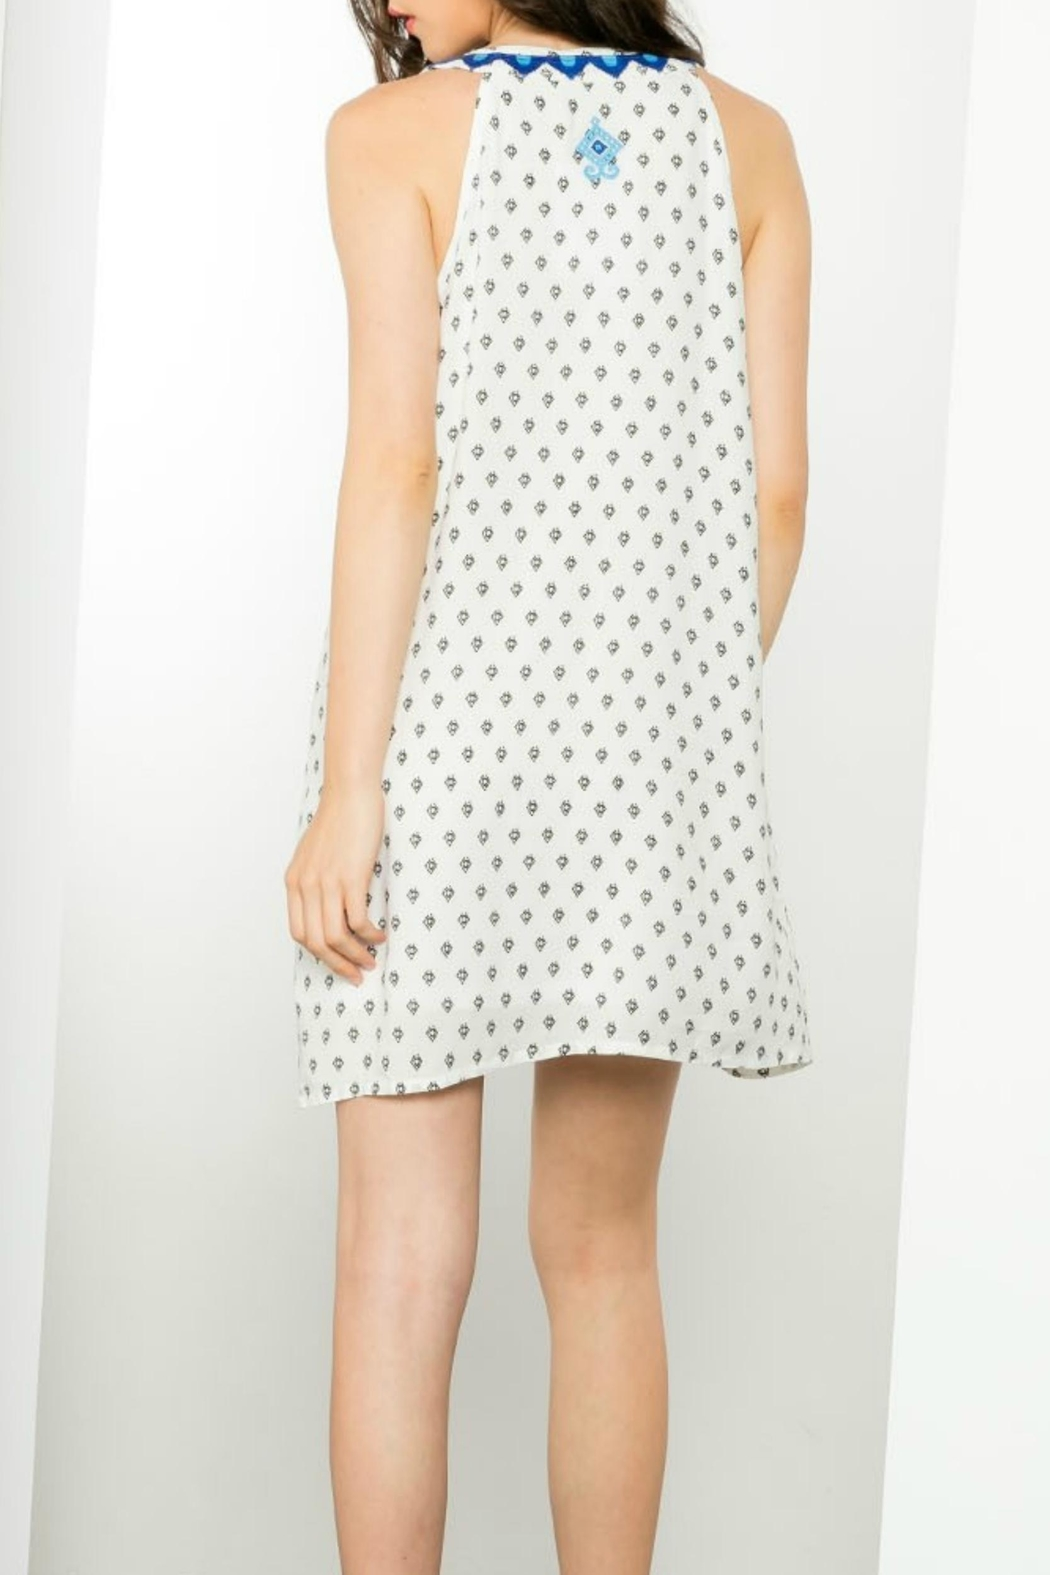 THML Clothing Sleeveless Embroidered Dress - Side Cropped Image